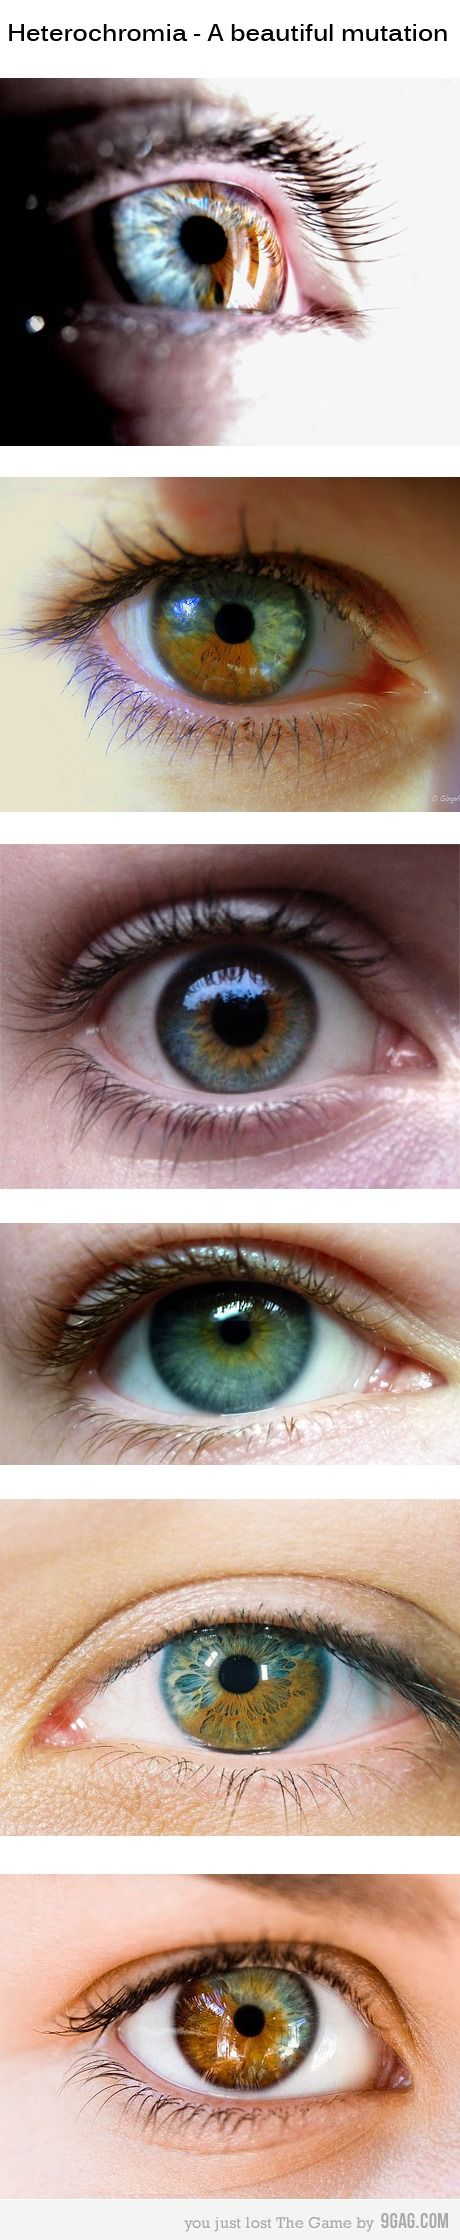 Heterochromia: a beautiful mutation. Heterochromia is relatively rare – it affects around 11 in every 1,000 people in America – but it can develop over time. It can be inherited from one's parents and come about as a result of various conditions – both genetic and acquired. In spite of this, it is not necessarily a sign of underlying health issues.